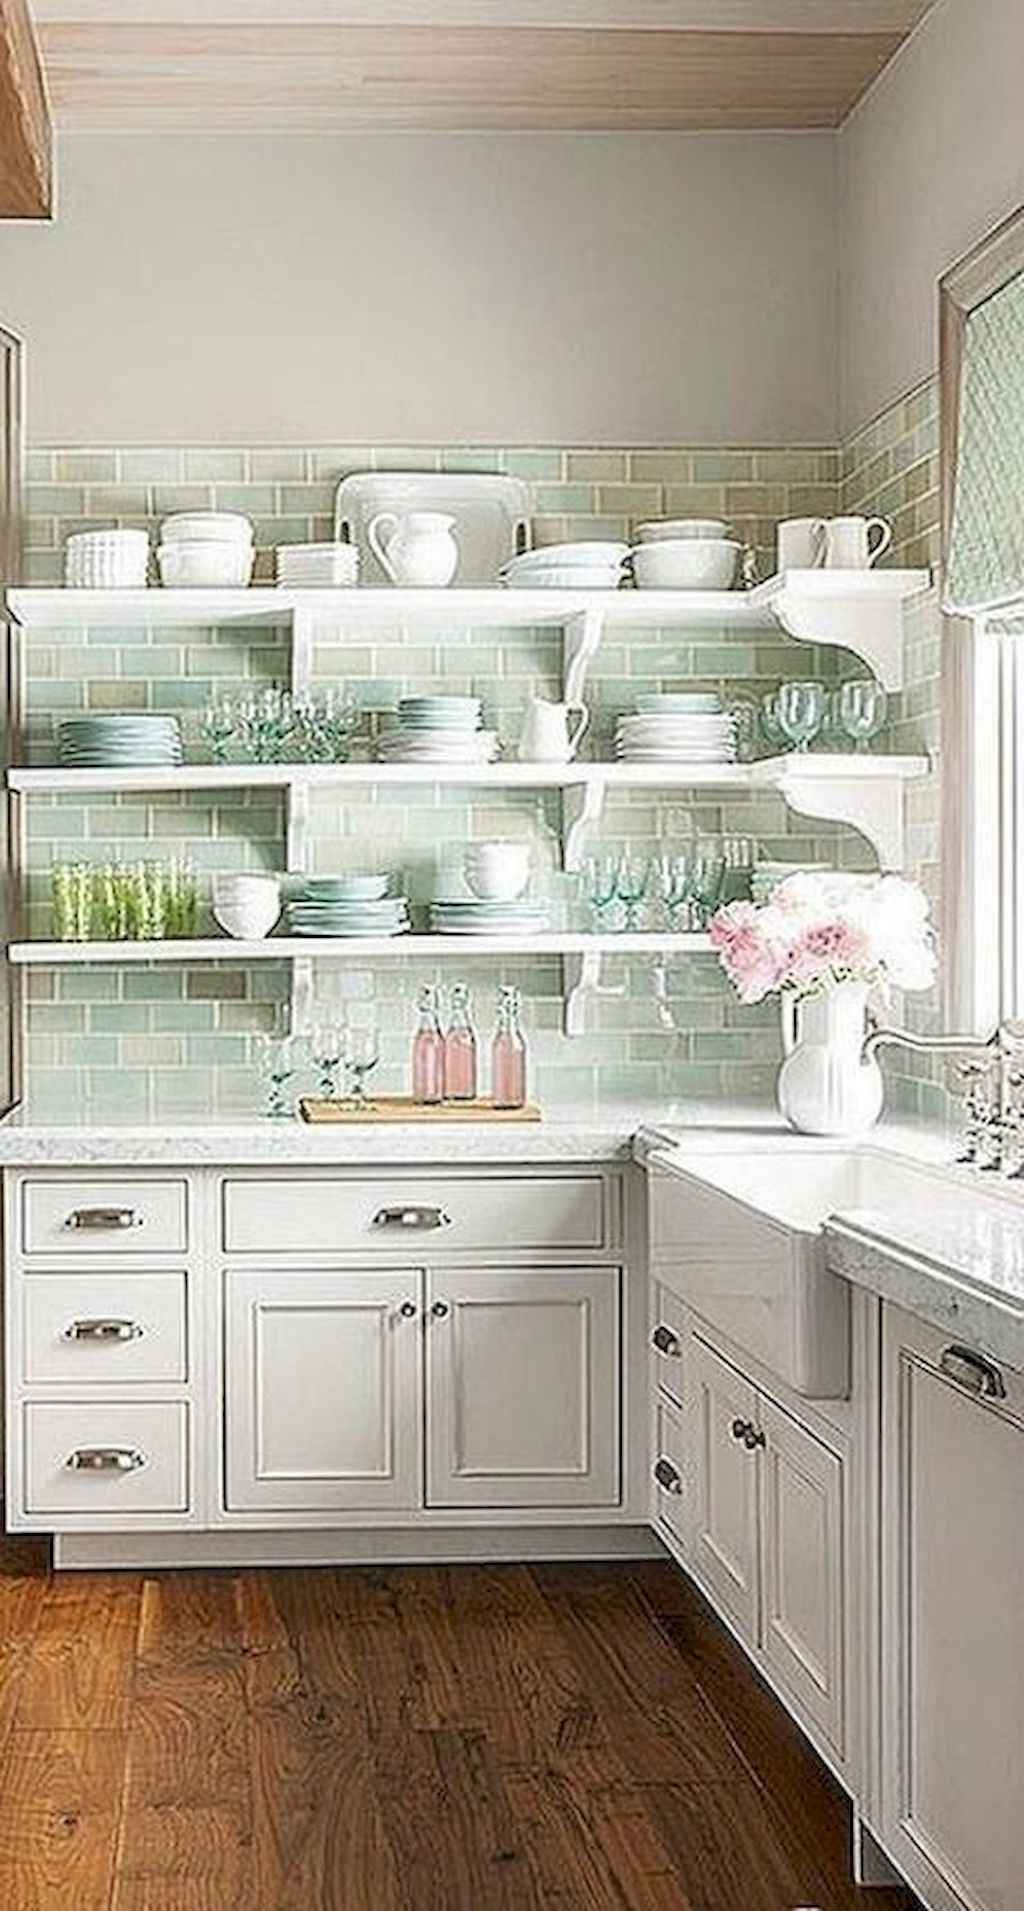 incredible french kitchen design | 30 incredible french country kitchen design ideas ...